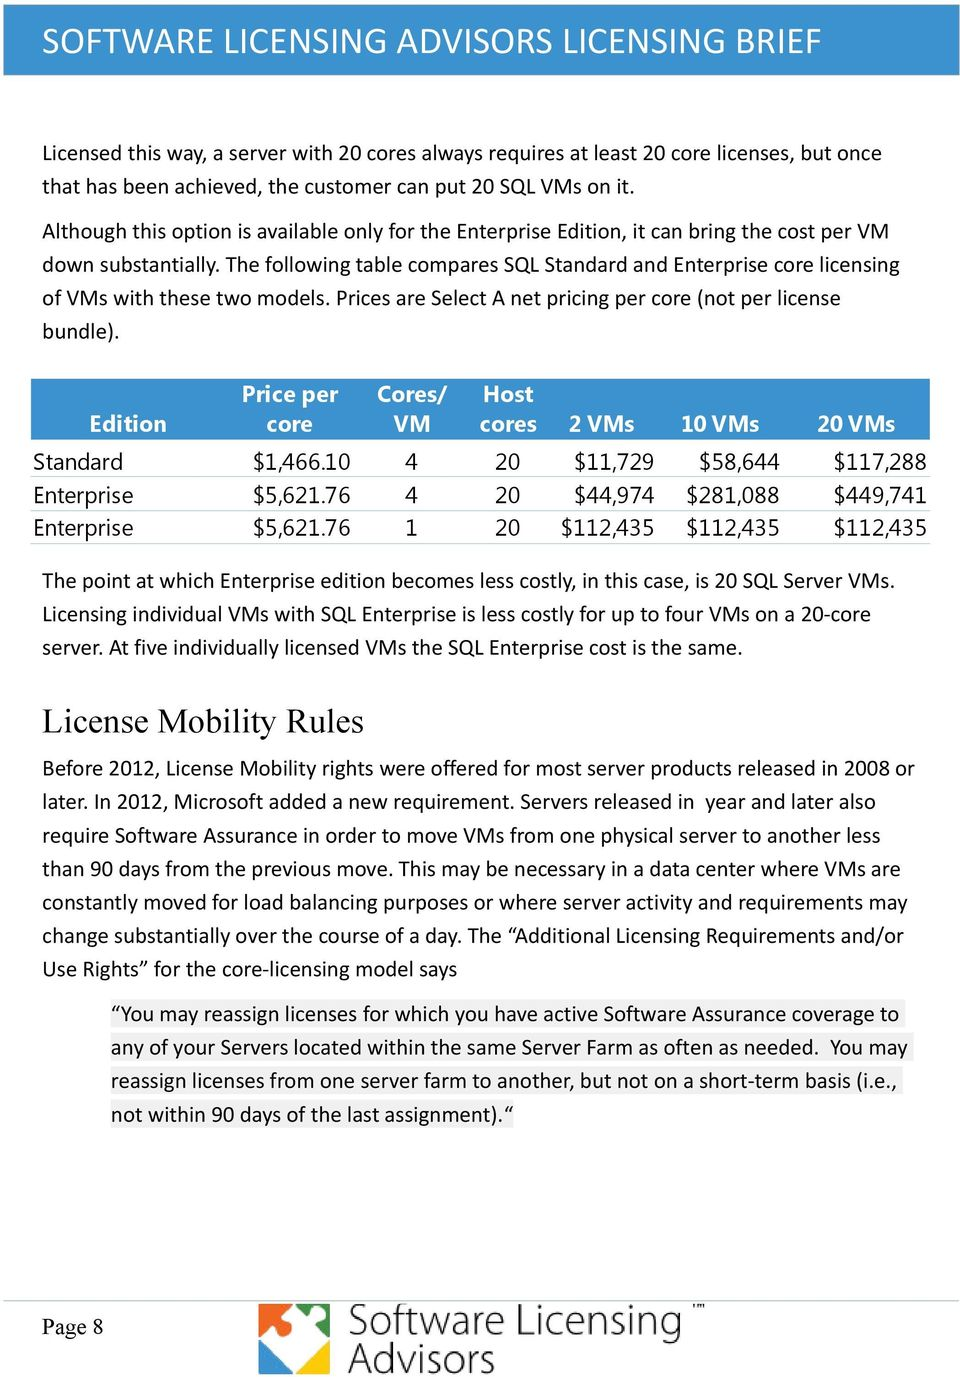 The following table compares SQL Standard and Enterprise core licensing of VMs with these two models. Prices are Select A net pricing per core (not per license bundle).